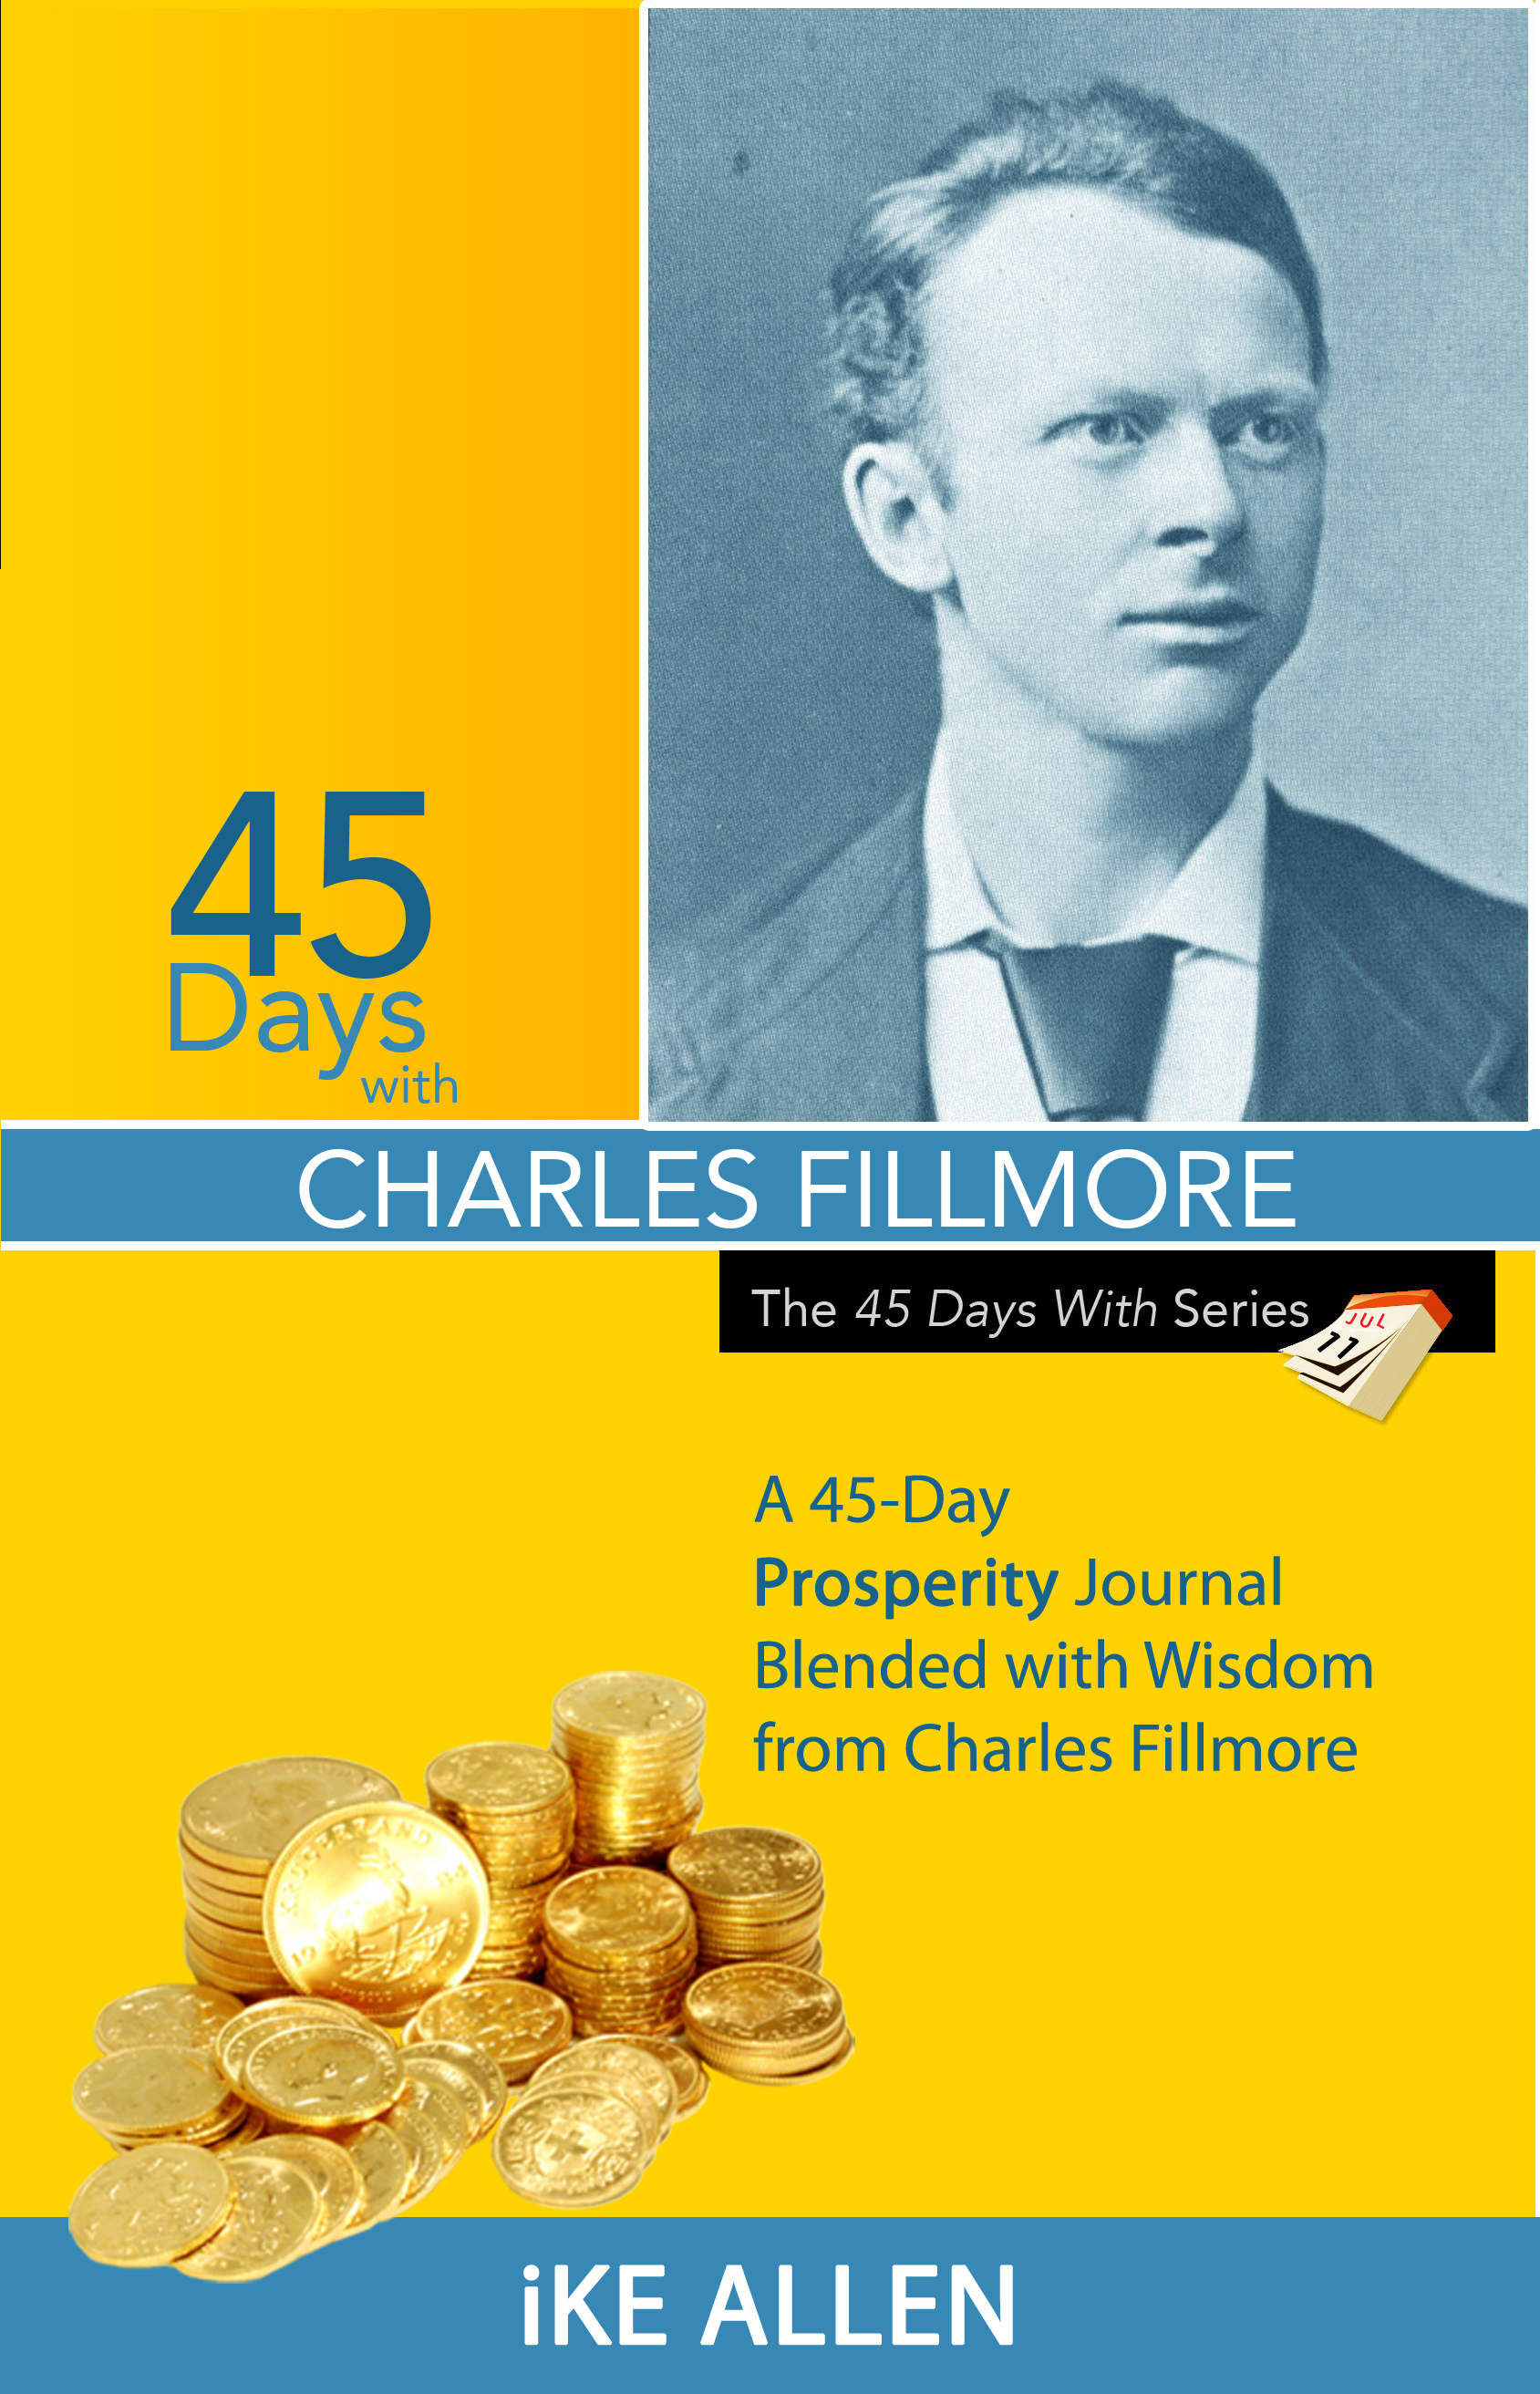 45 Days with Charles Fillmore